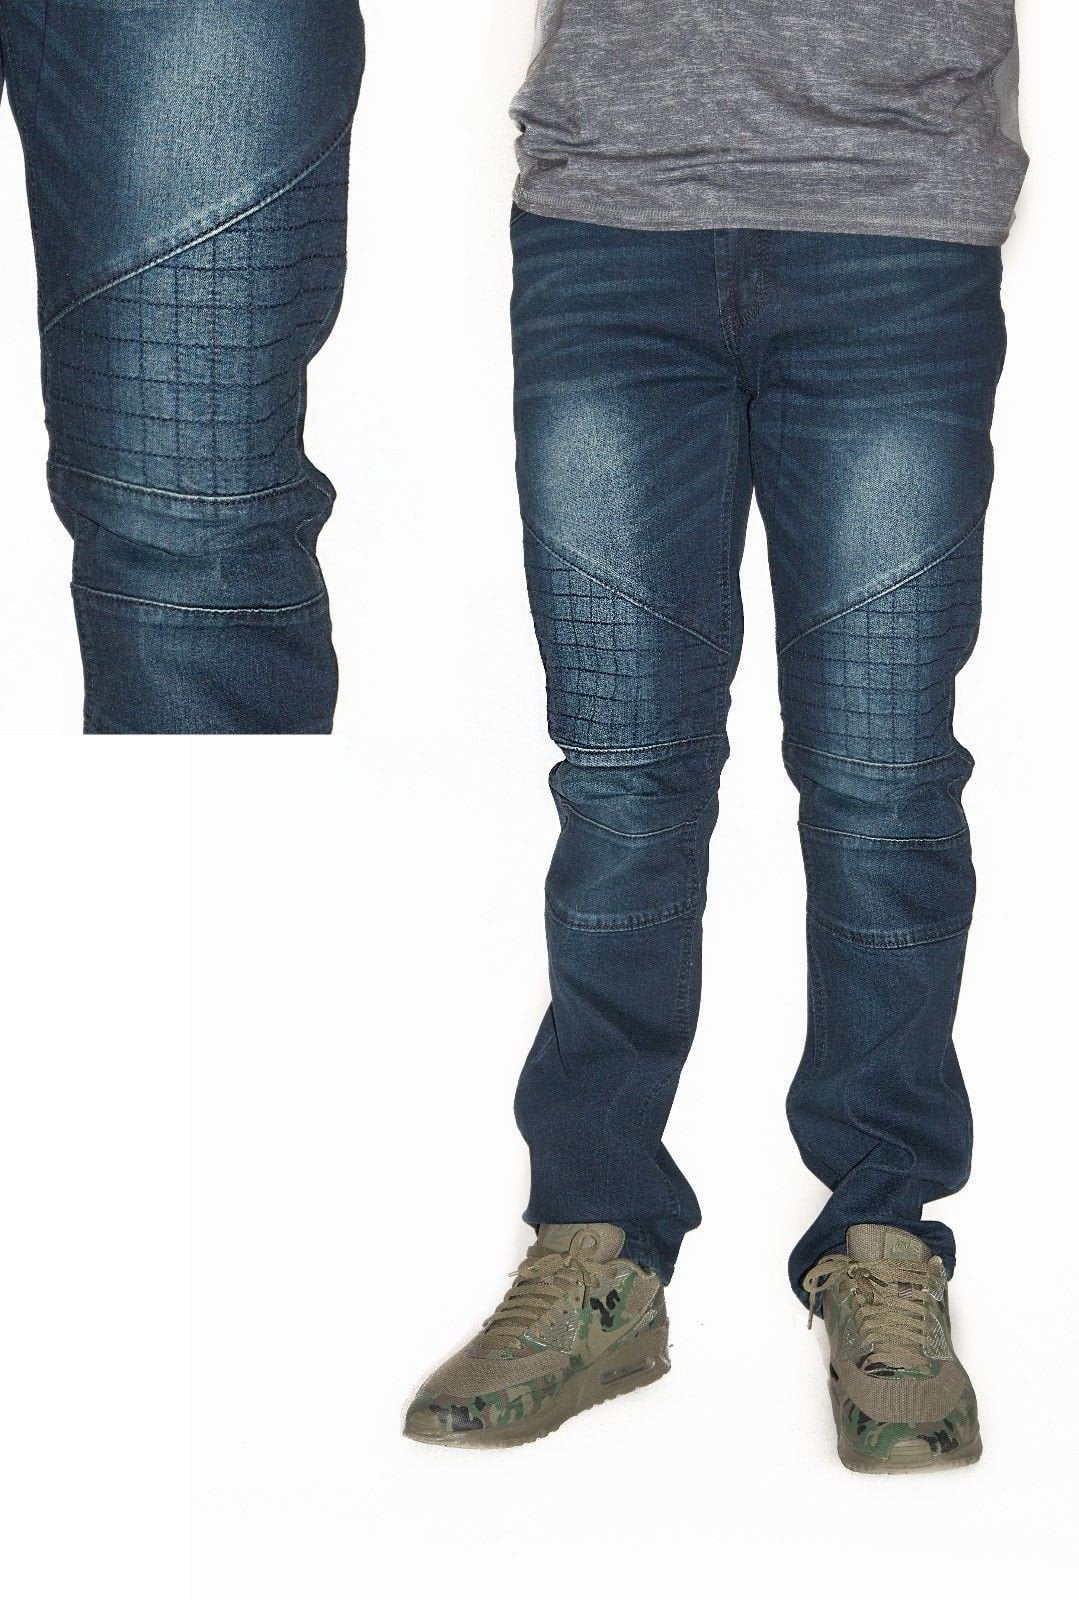 Waimea Summer Collection 430SF Biker Denim - (Blue Black)